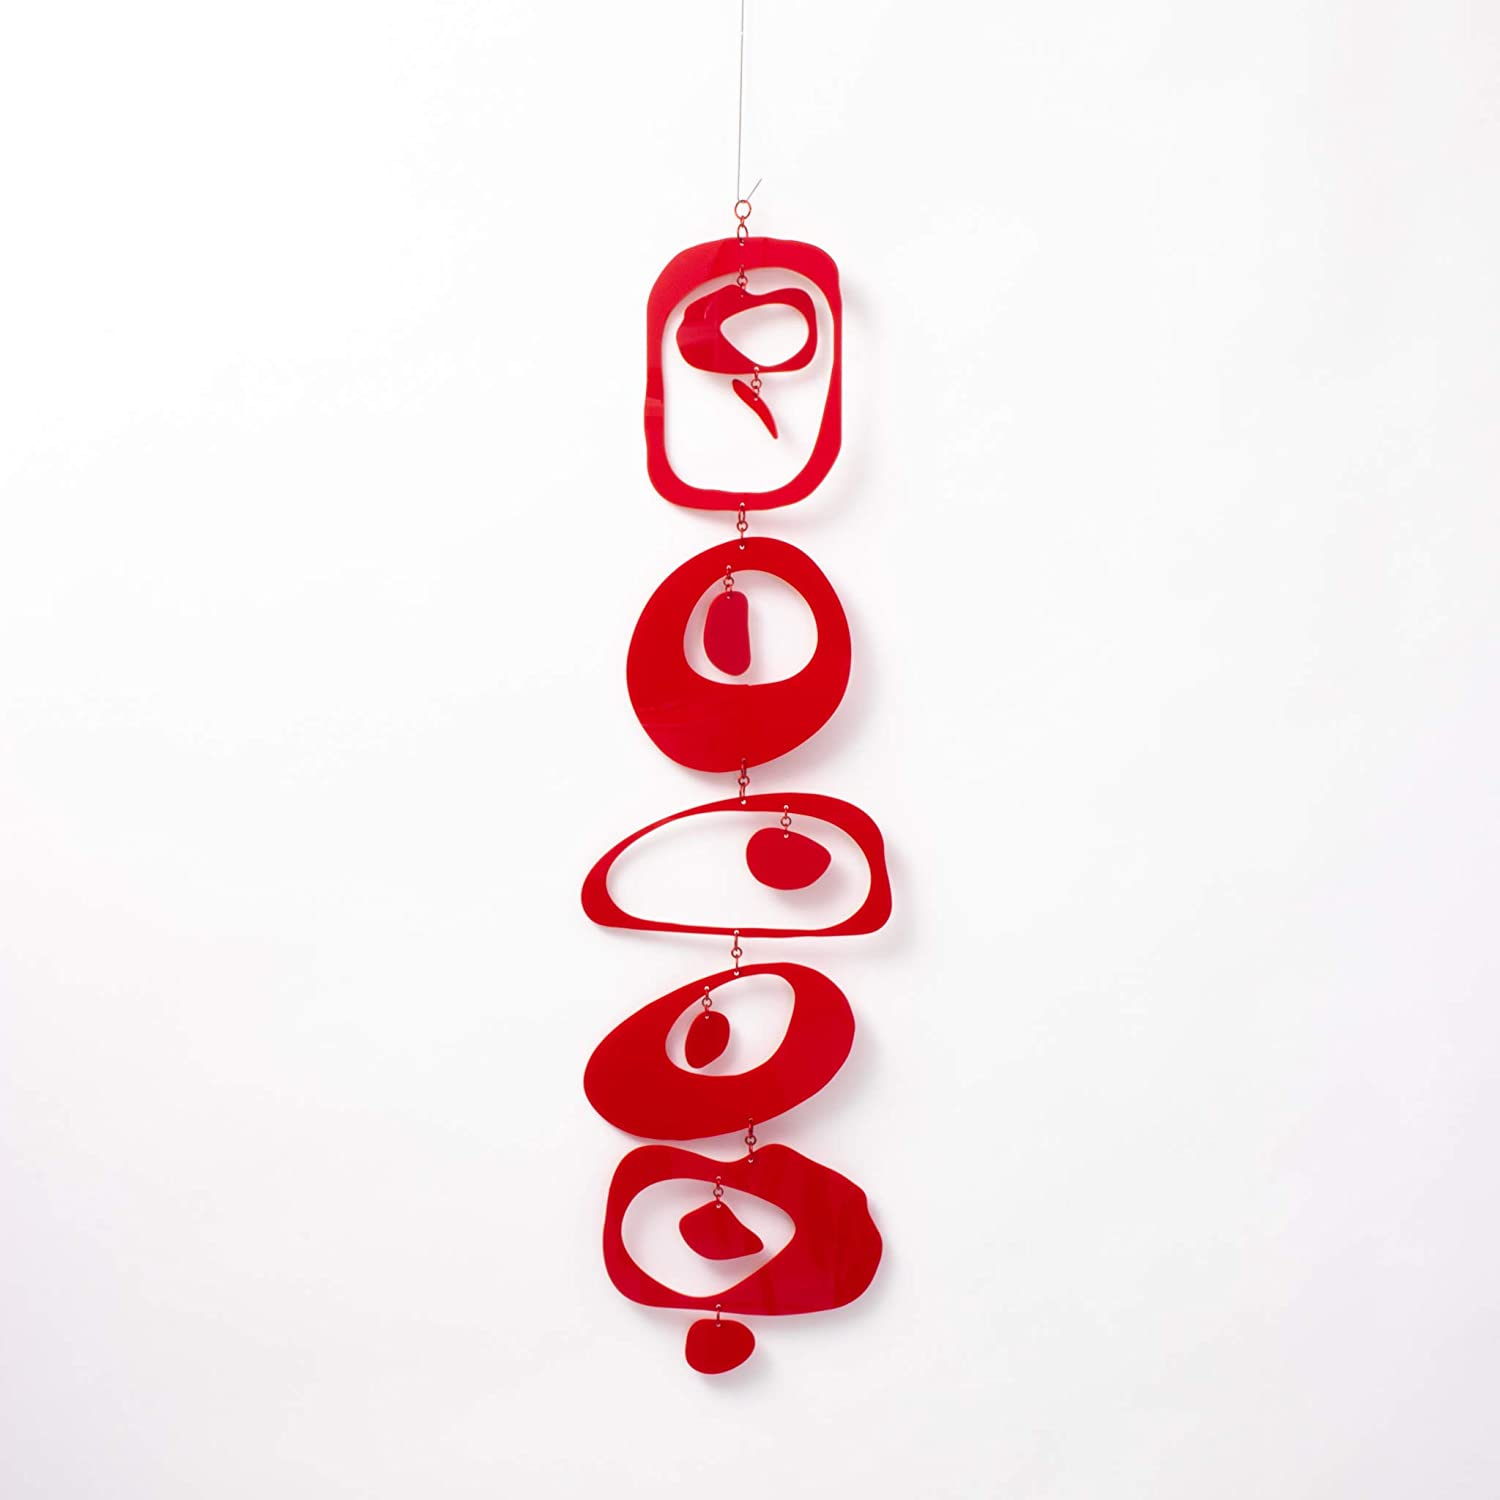 Zen Mobile - Red Calm Mindfulness Art Mobil Decor Hanging Max 81% OFF Max 59% OFF Home